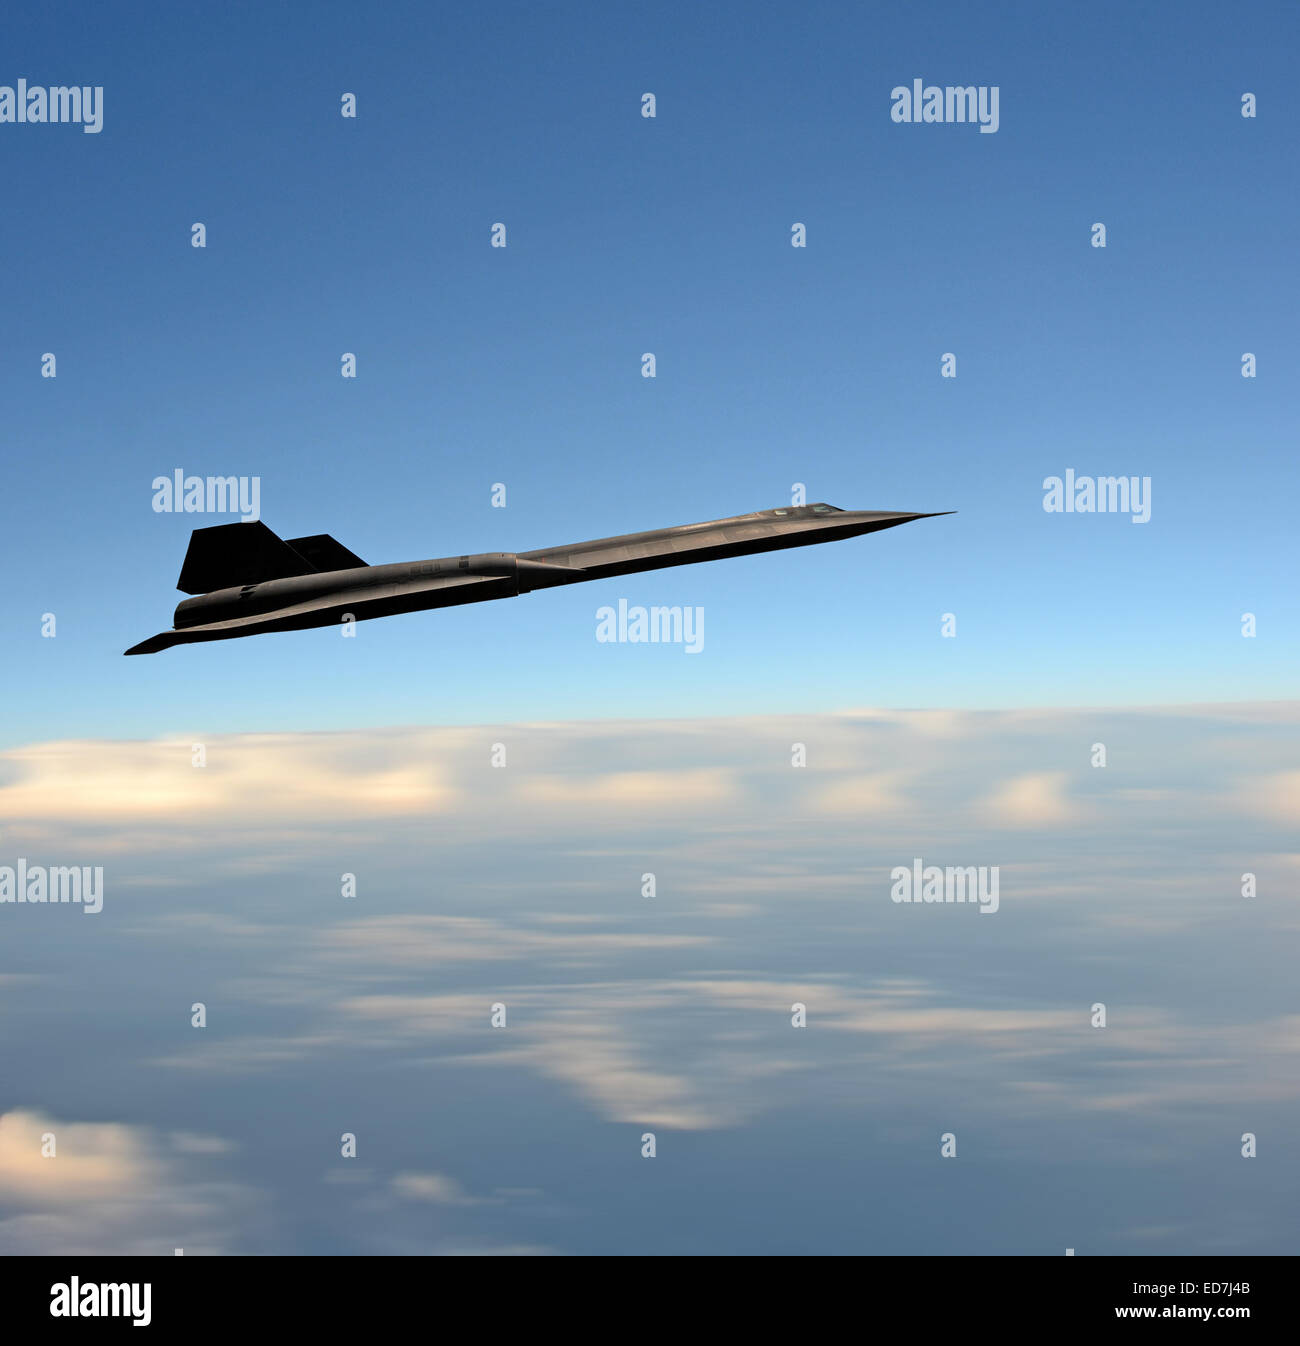 High flying SR-71 Blackbird reconnaissance spy airplane on a mission - Stock Image